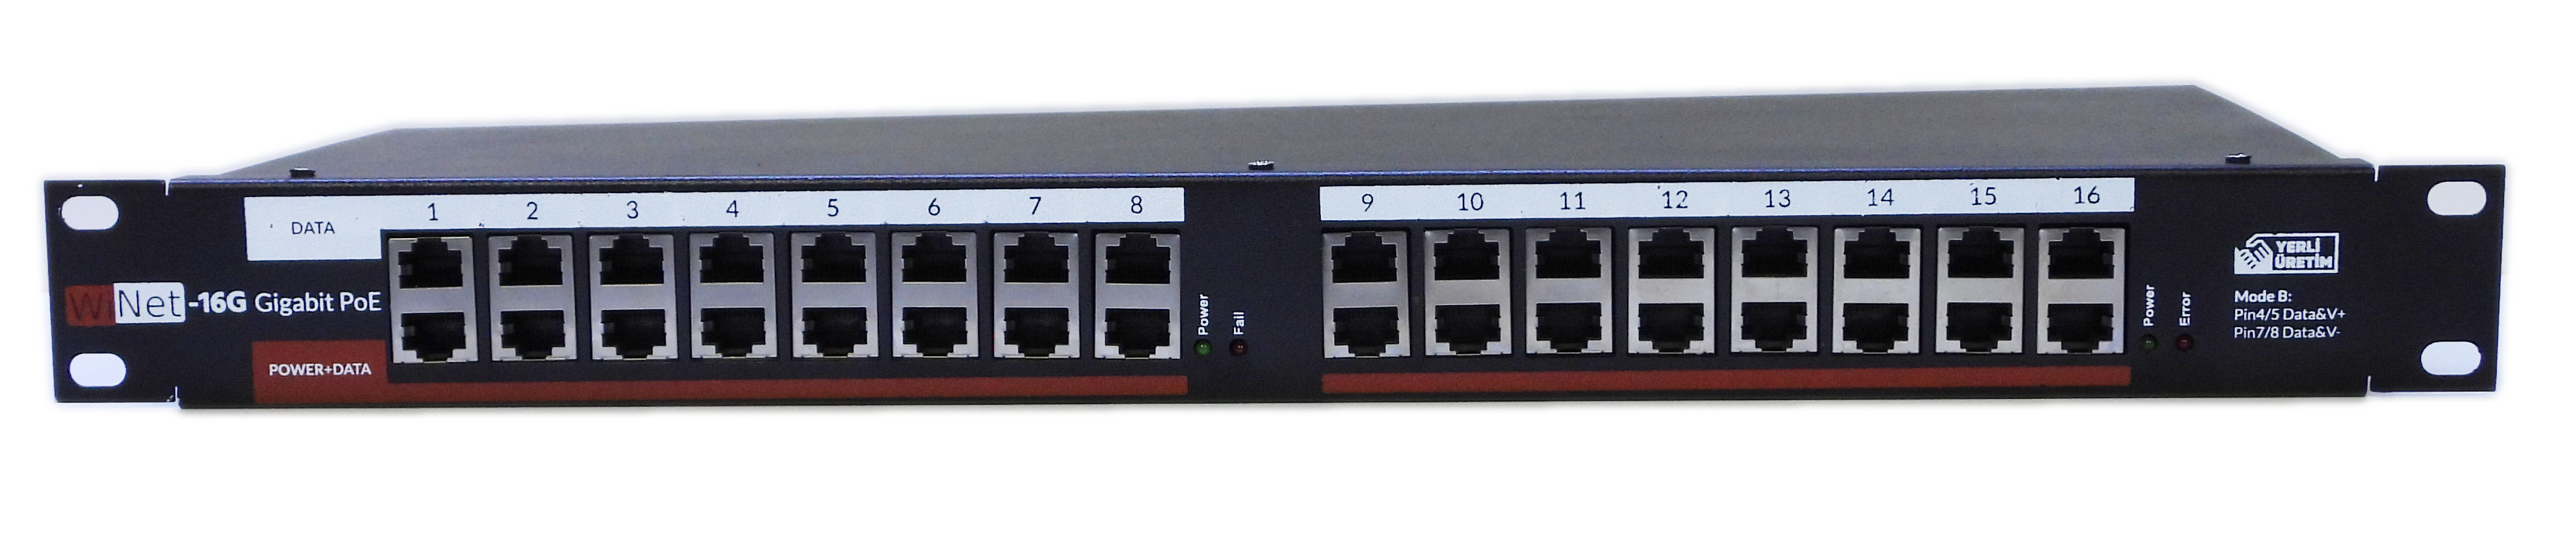 PANEL-16P-GB-POE-V2 16 PORT GIGABIT POE PANEL INJECTOR V2